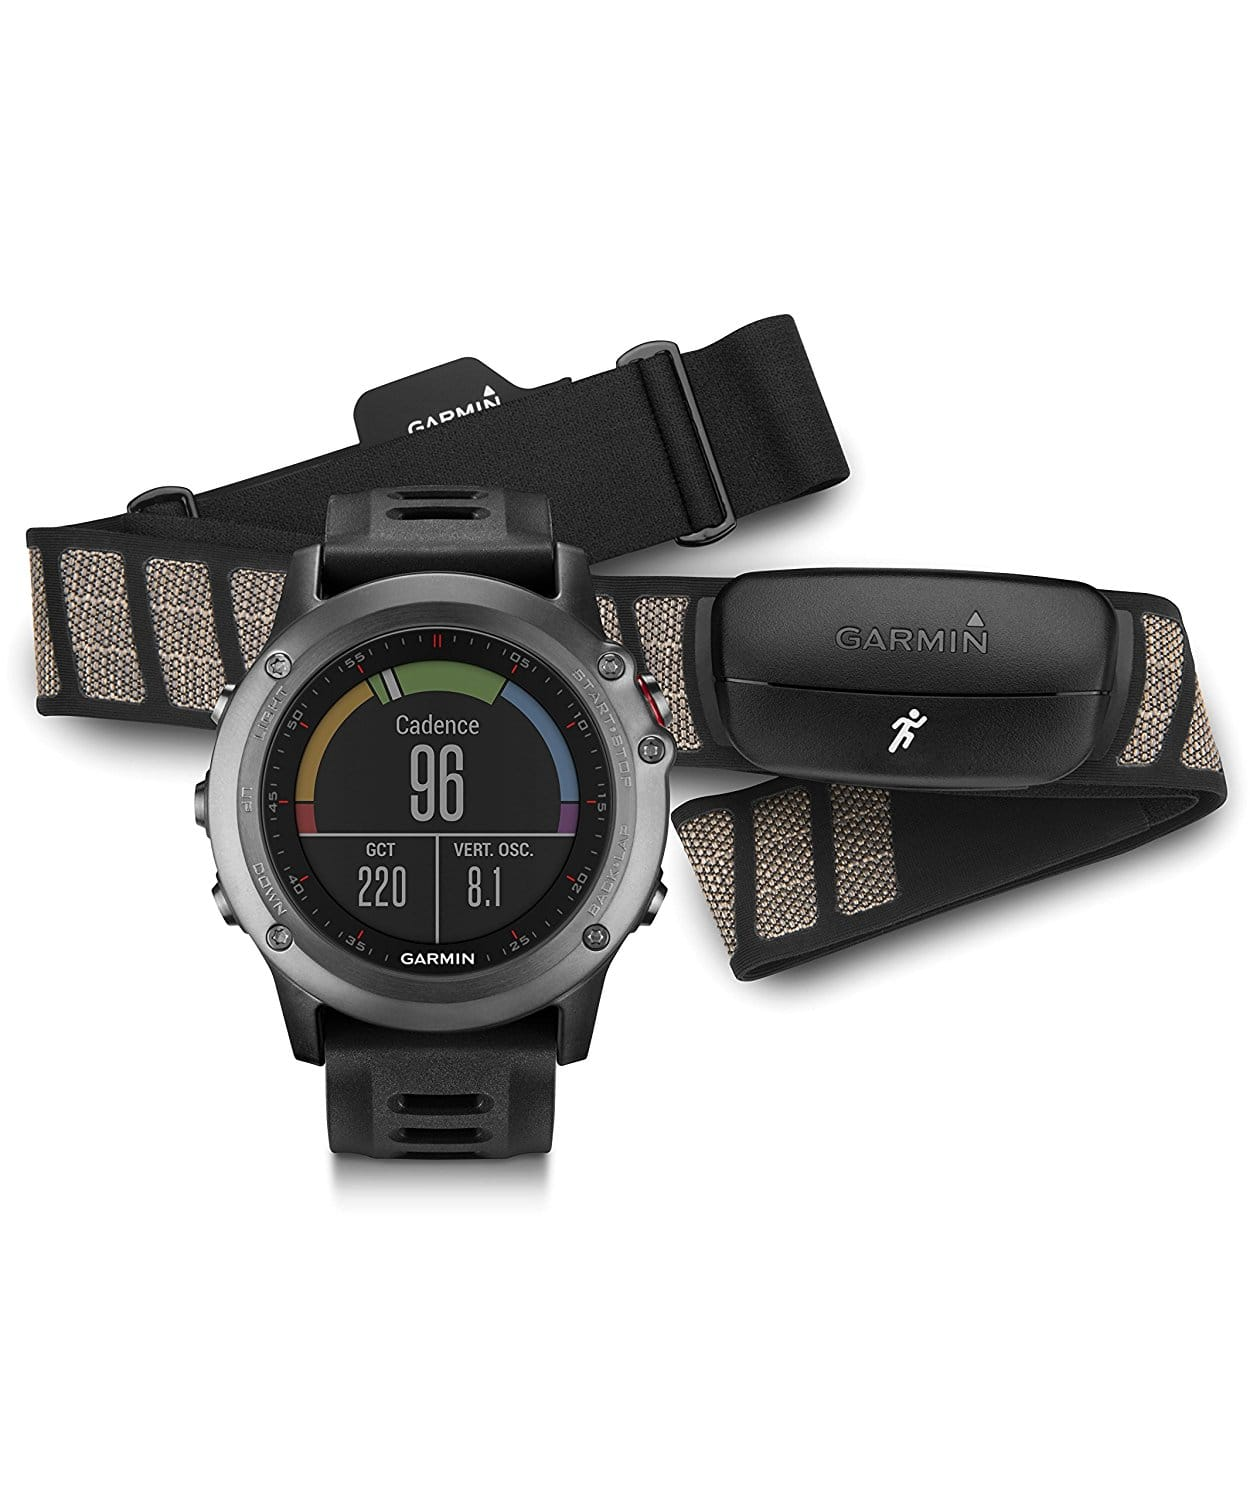 Garmin fenix 3, Gray bundle with Heart Rate Monitor for $349 @Amazon + FS